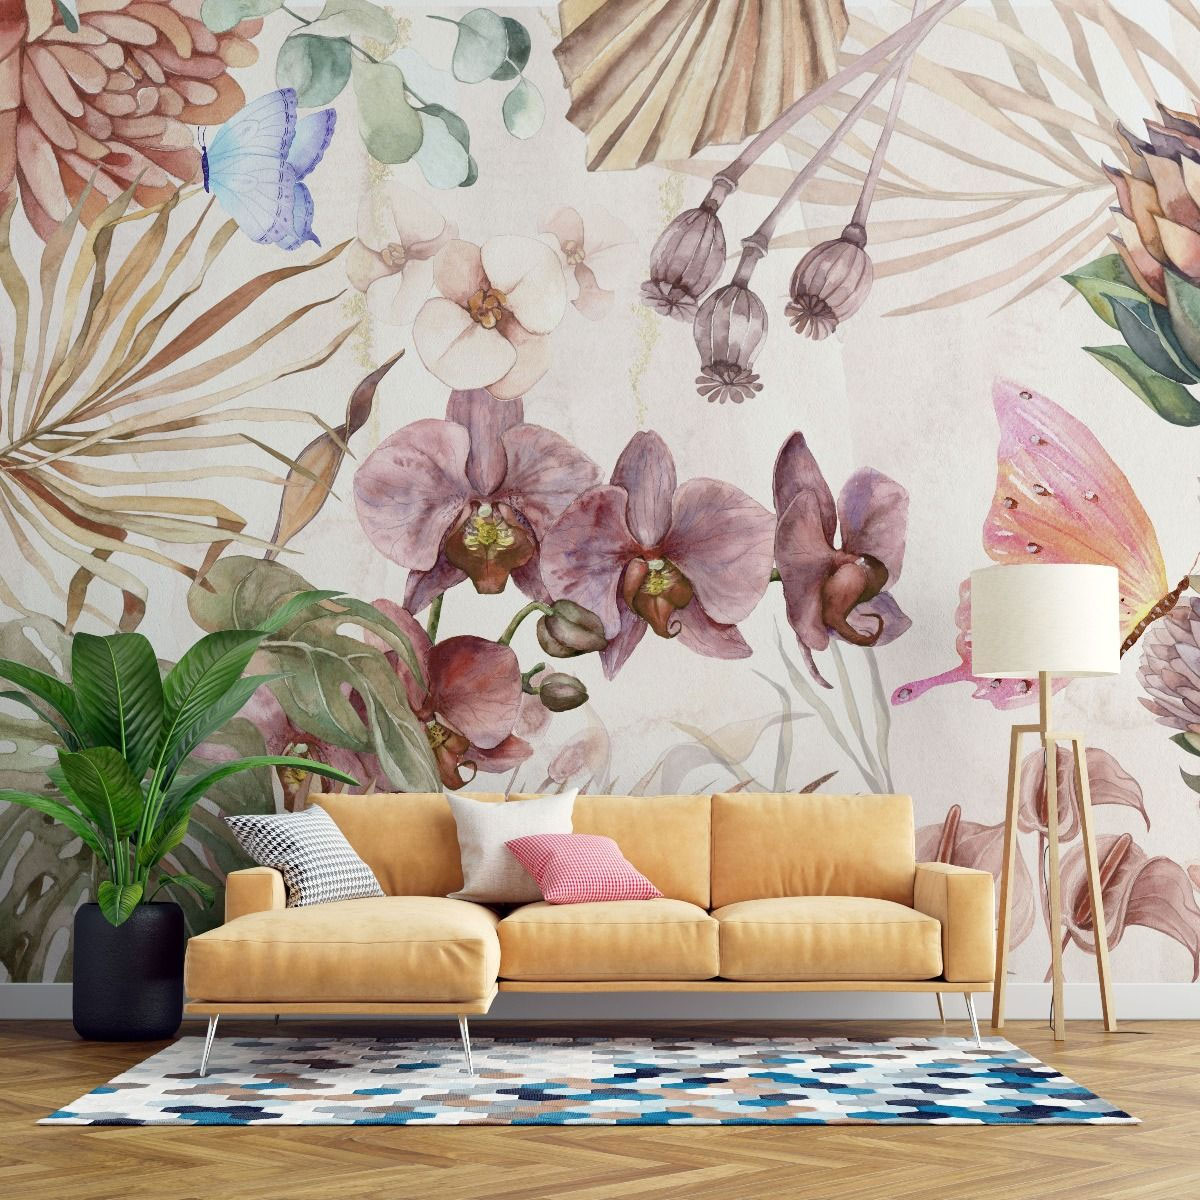 Feel Cosy and Stylish with Wall Decals for Bedroom